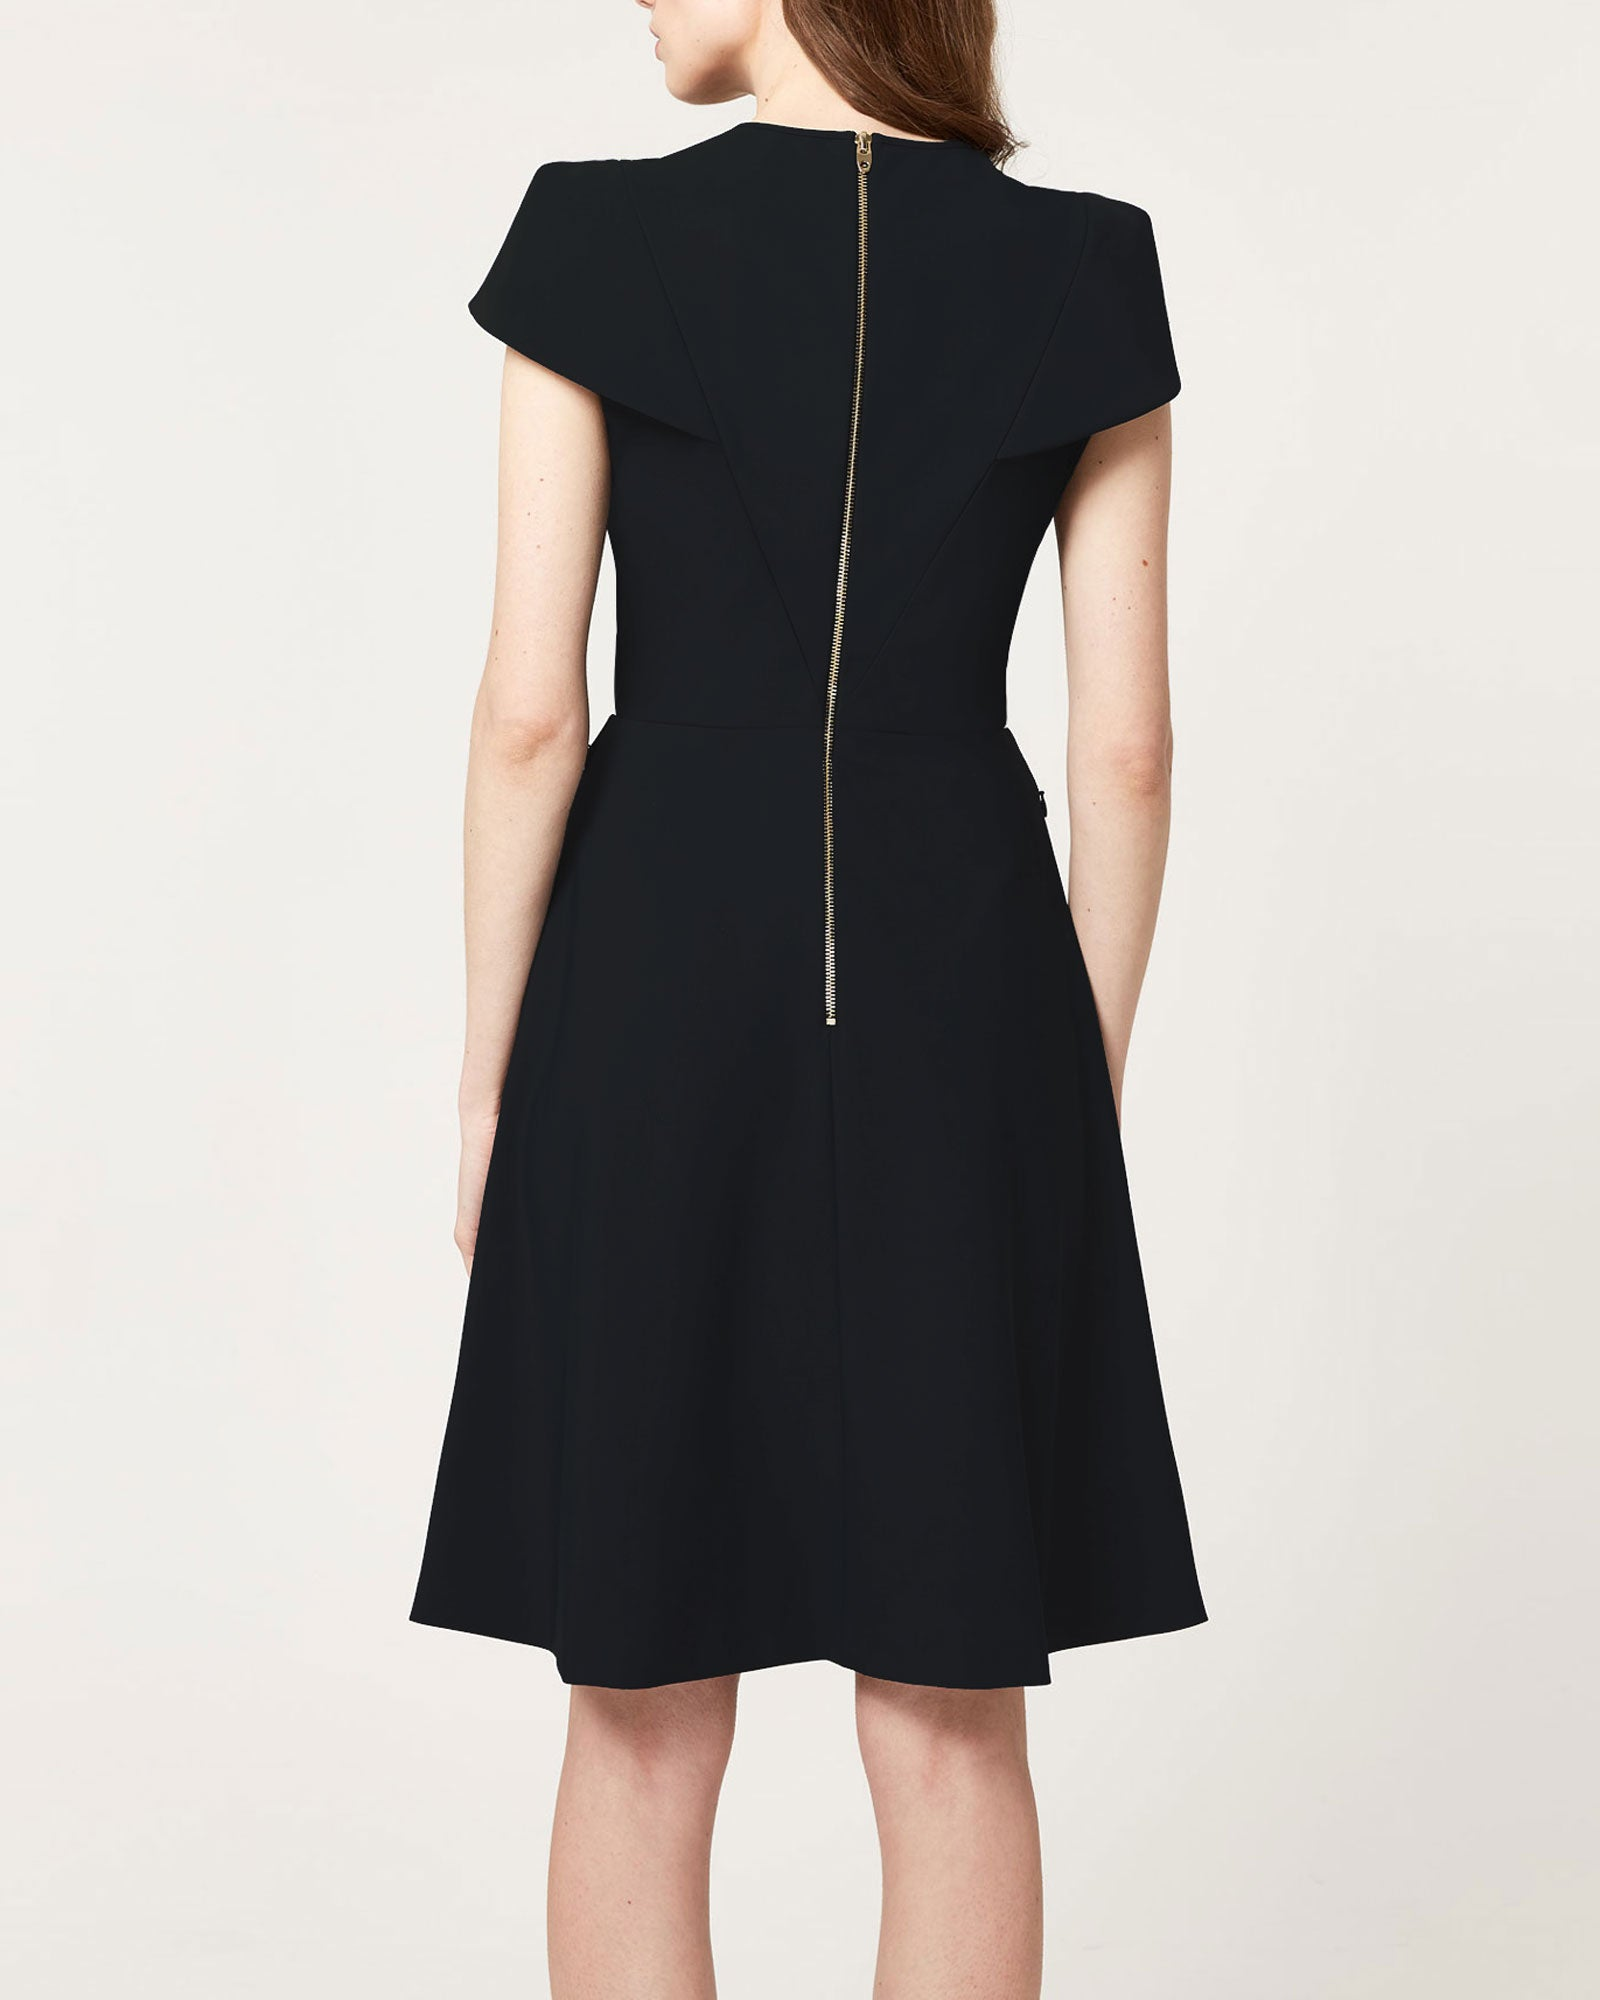 A-Game Dress Black